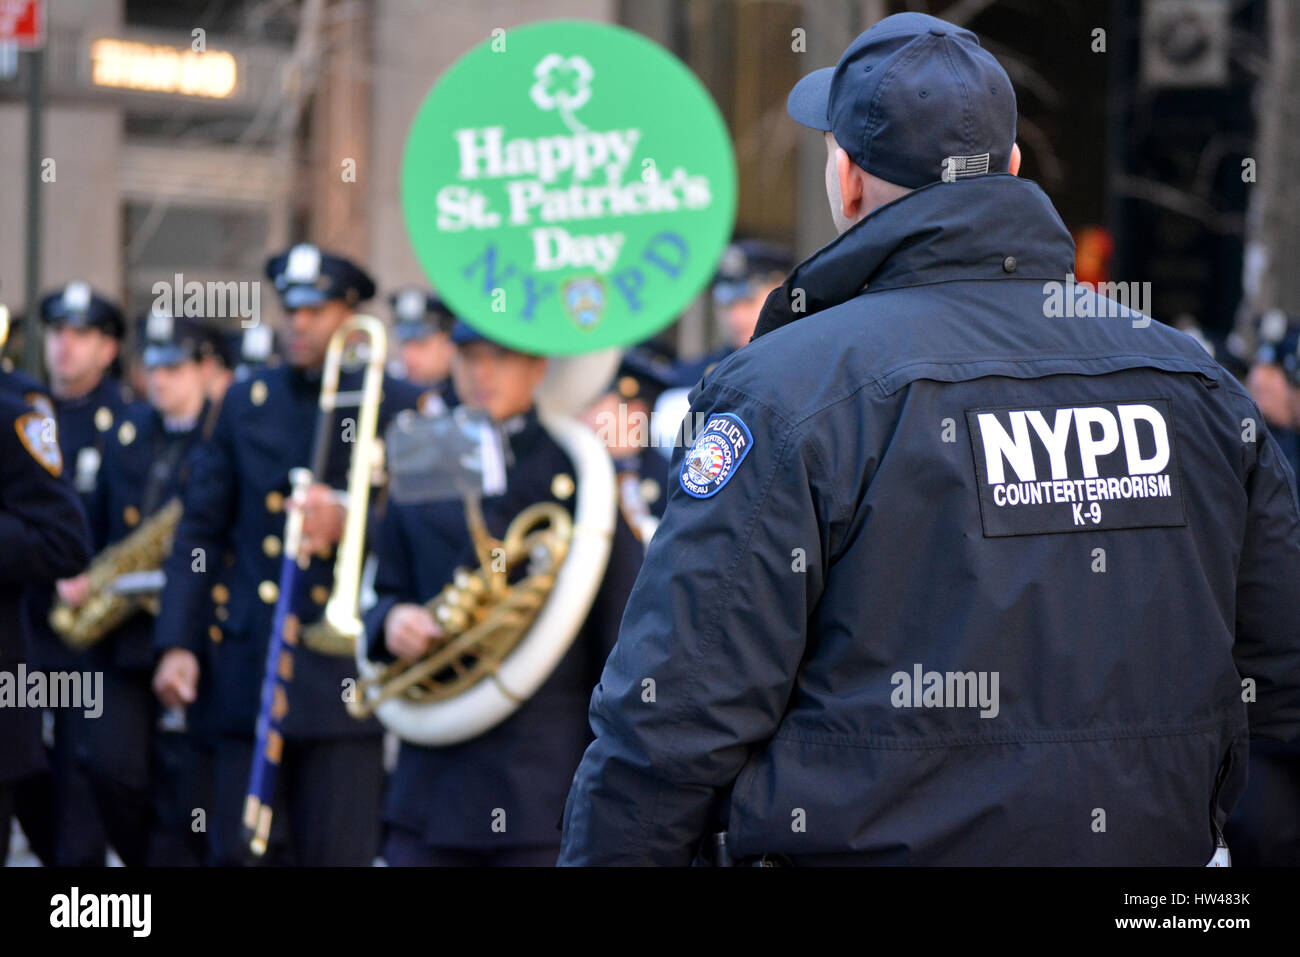 77052ac8 Manhattan, USA. 17th Mar, 2017. NYPD Counter Terrorism officer protecting  the New